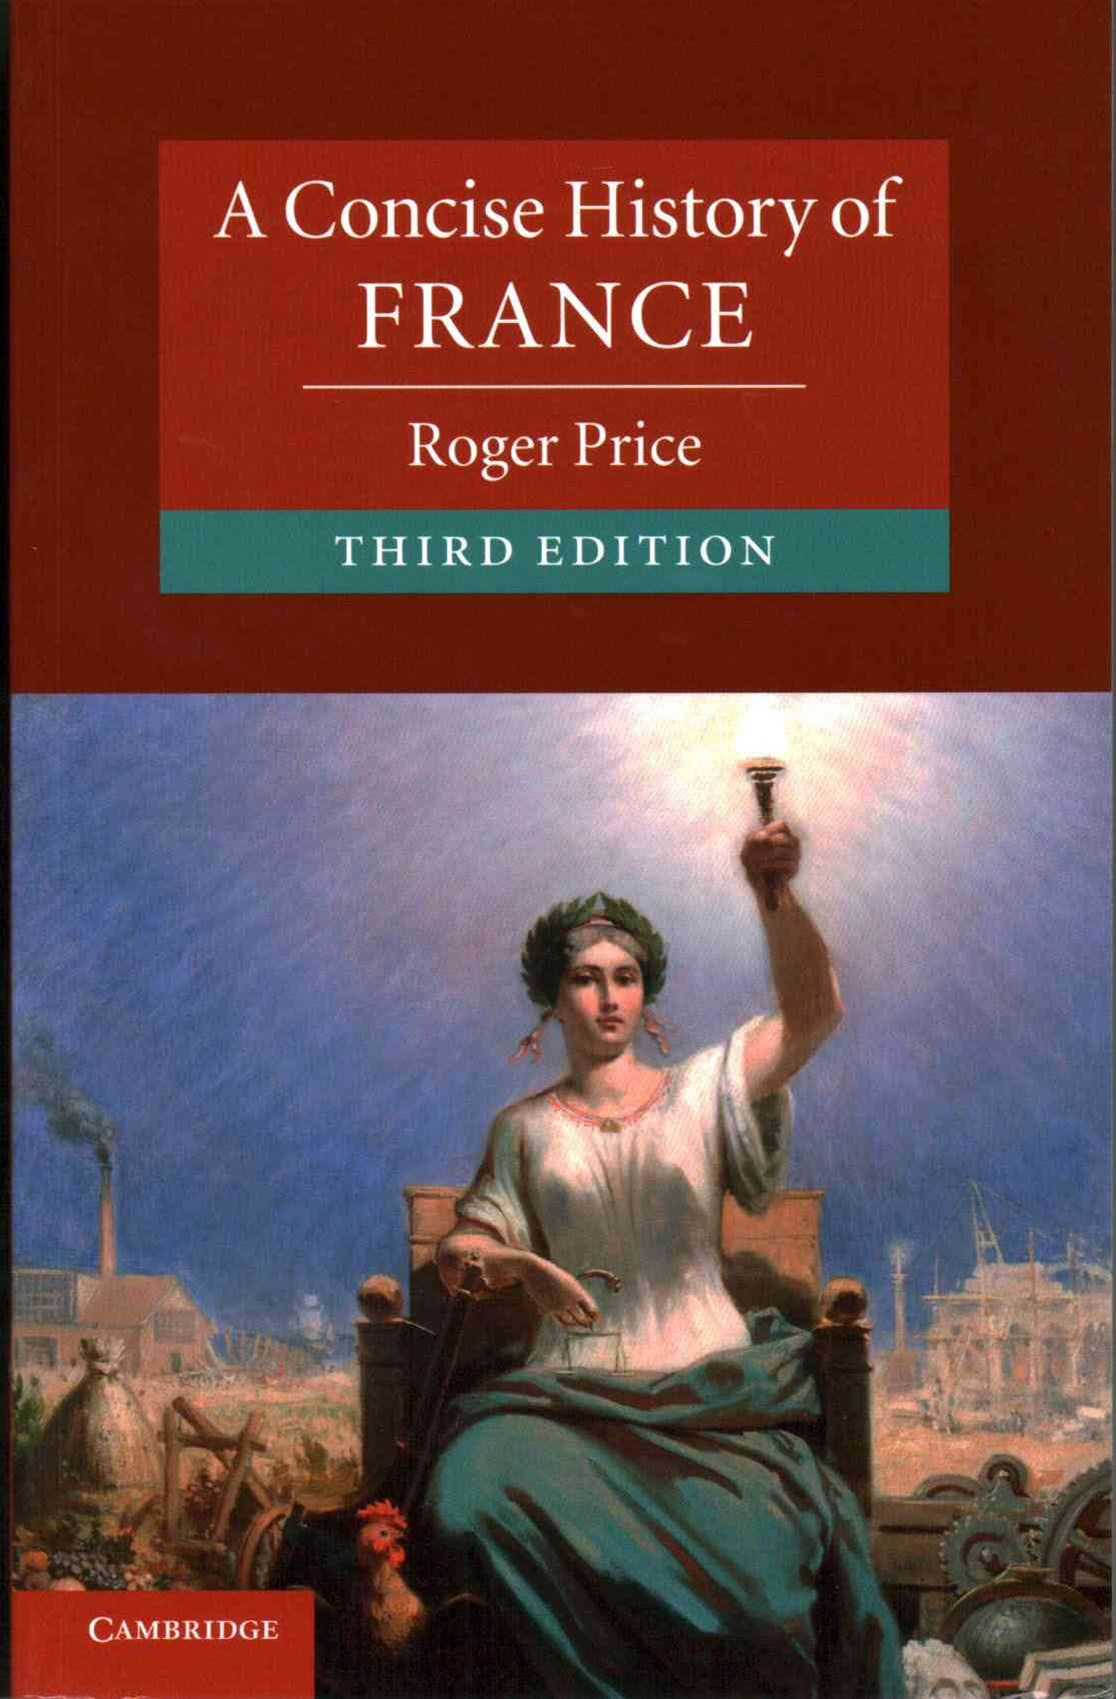 A Concise History of France